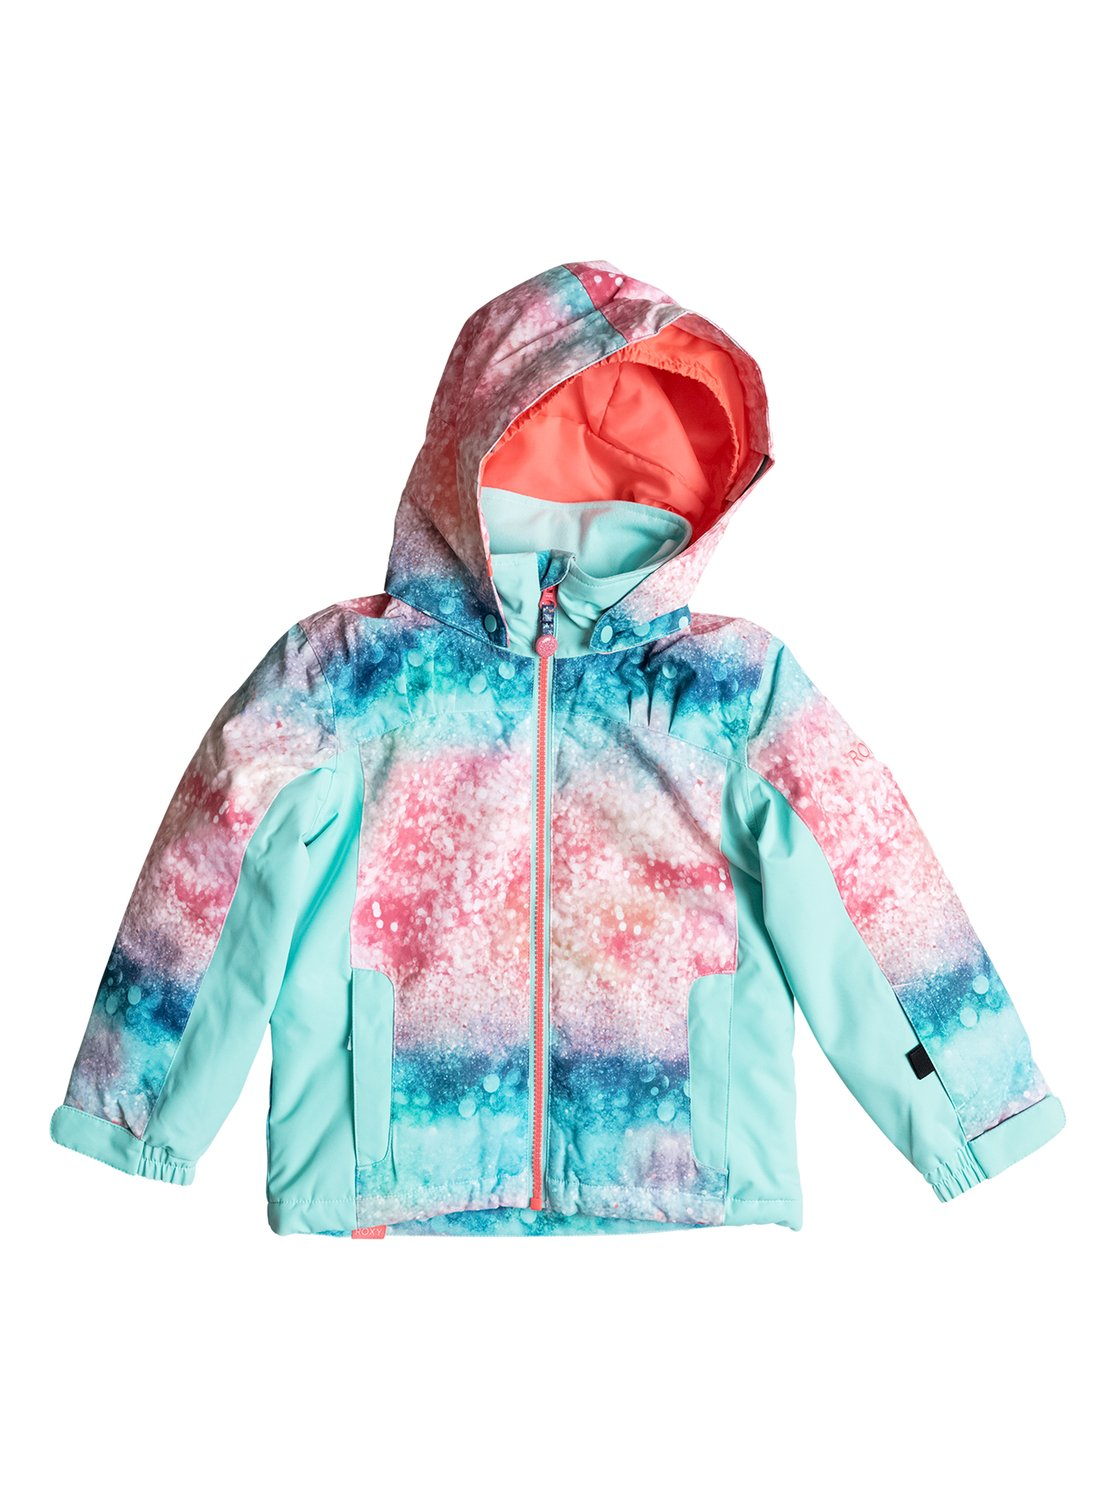 Mini Jetty - Veste de snow pour Fille - Roxy